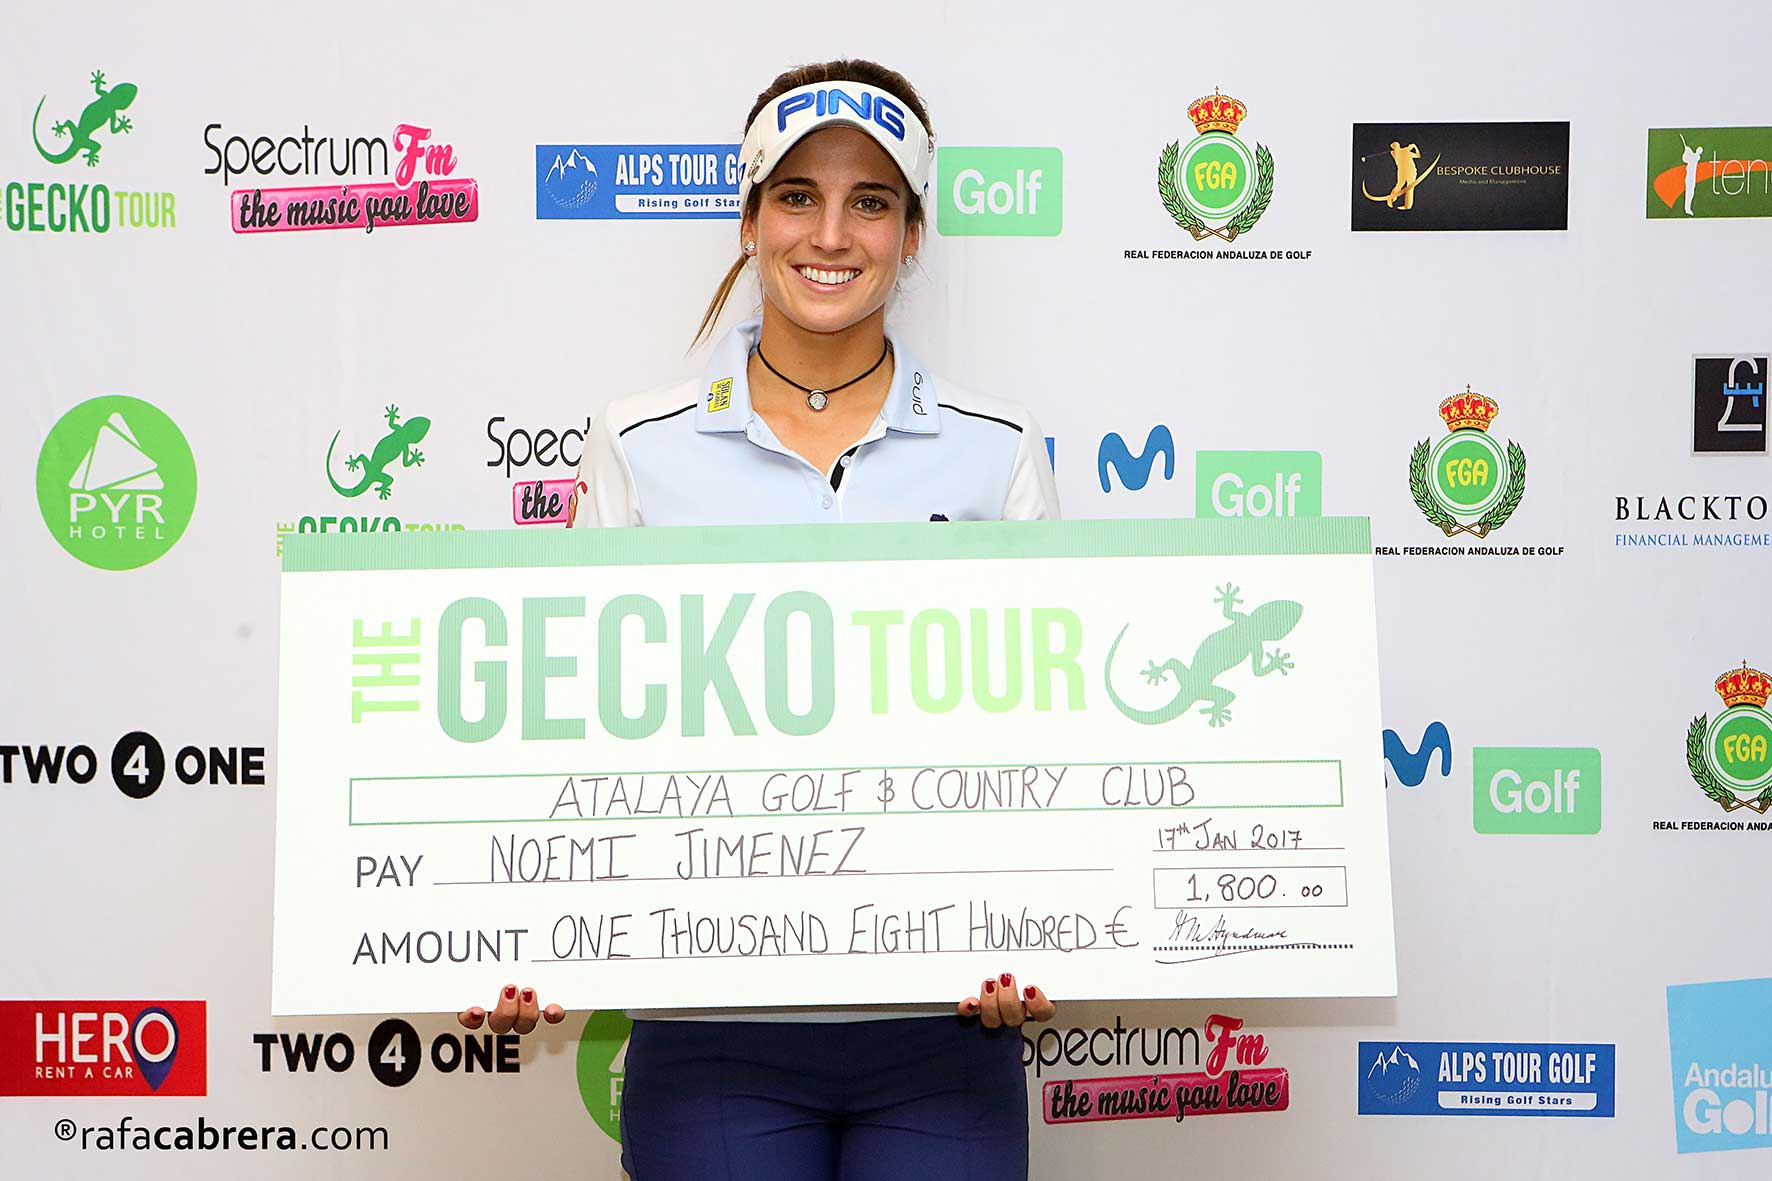 Noemí Jiménez makes history in Gecko Tour